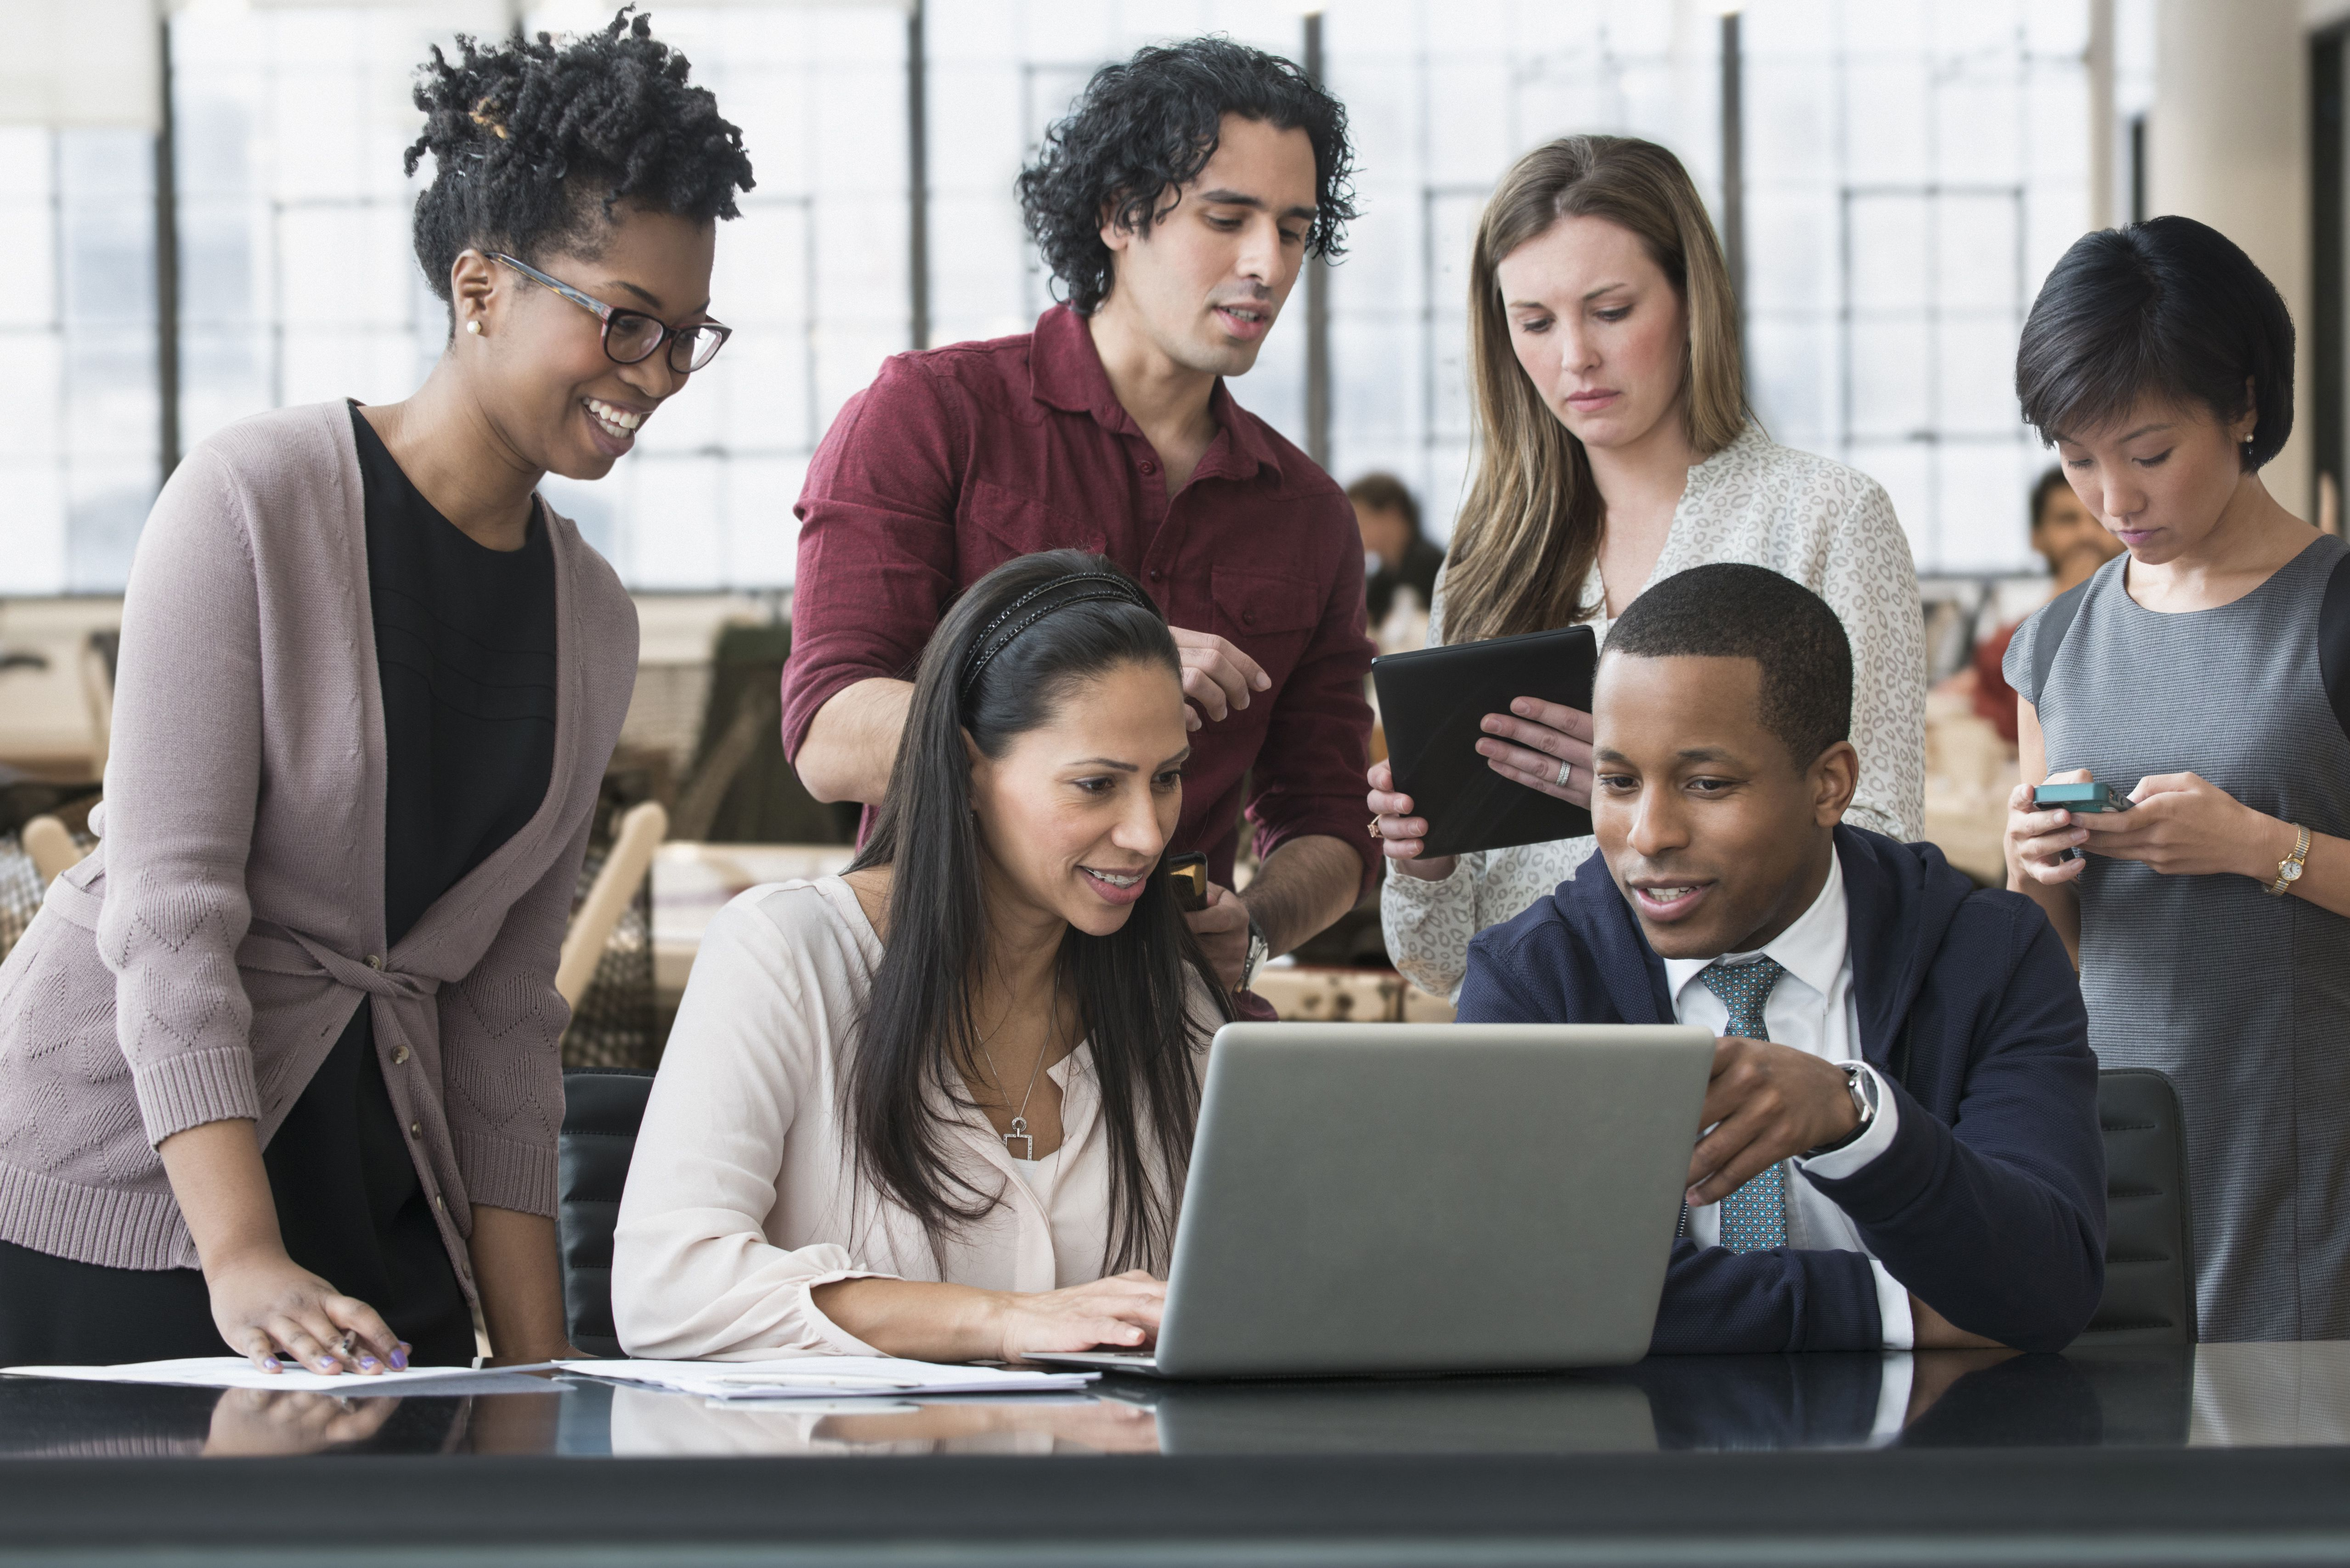 How You Can Best Demonstrate Respect In The Workplace